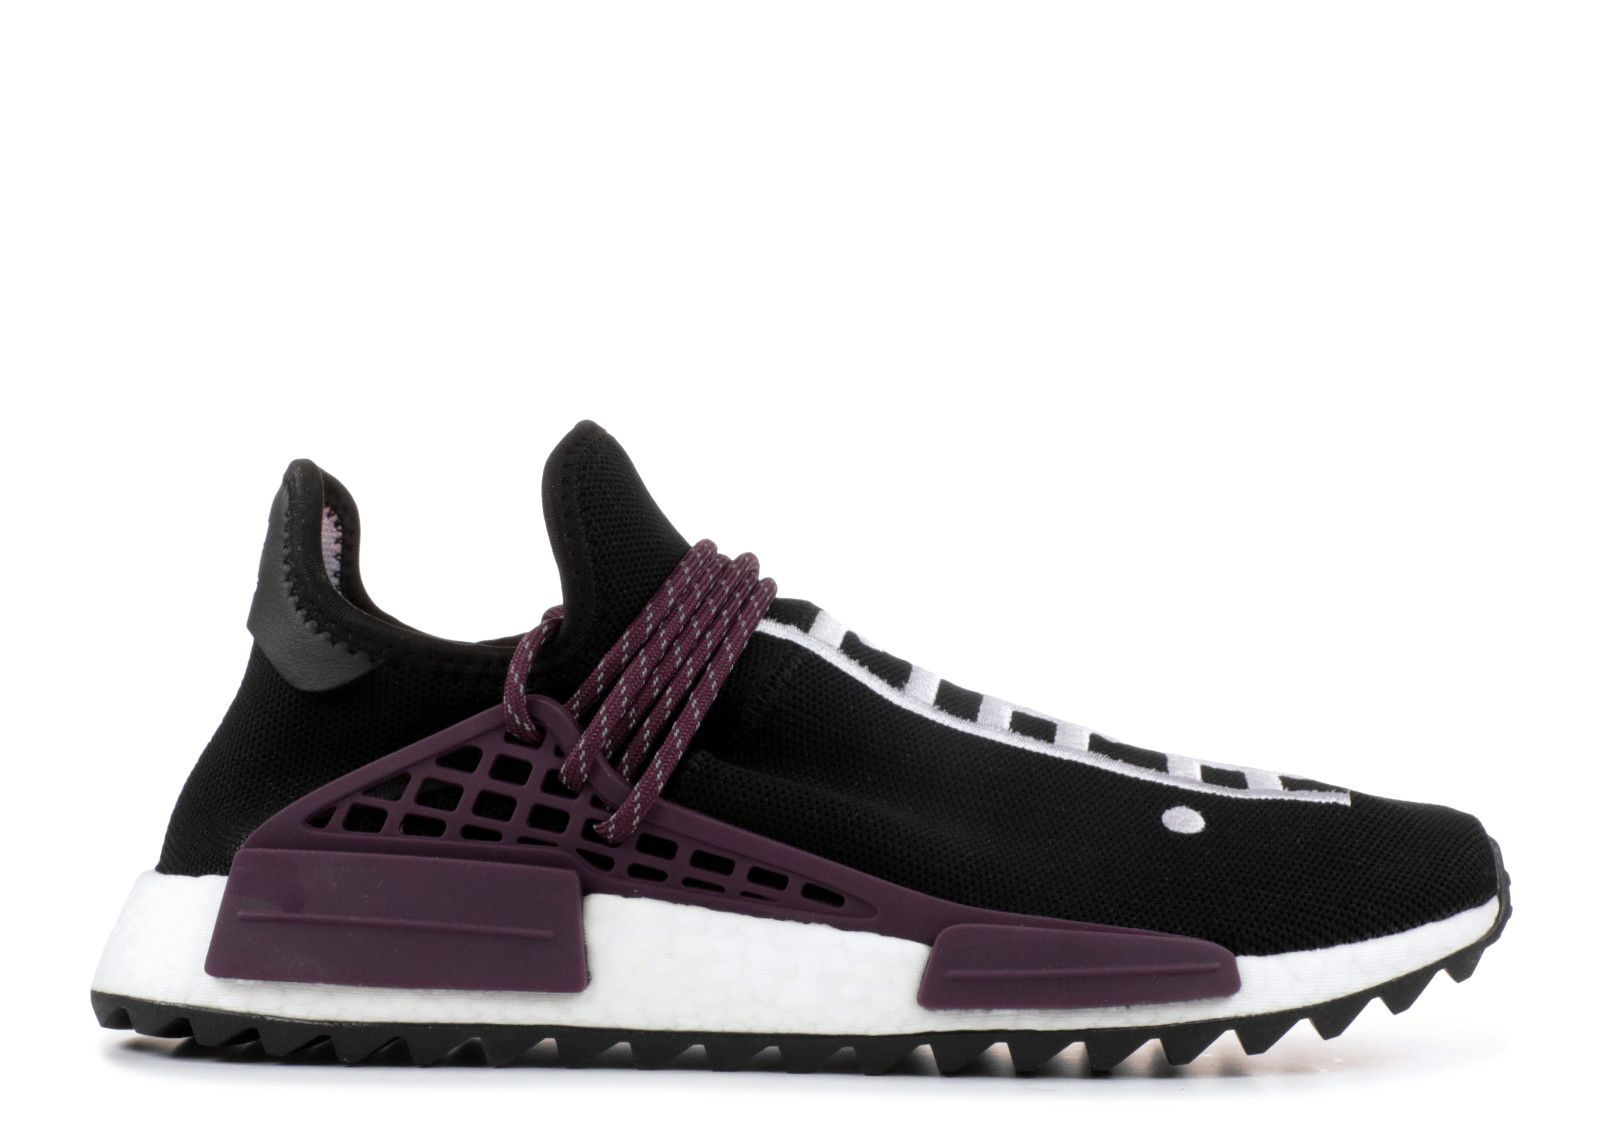 Adidas Pw Hu Nmd Holi Pack Equality On Feet